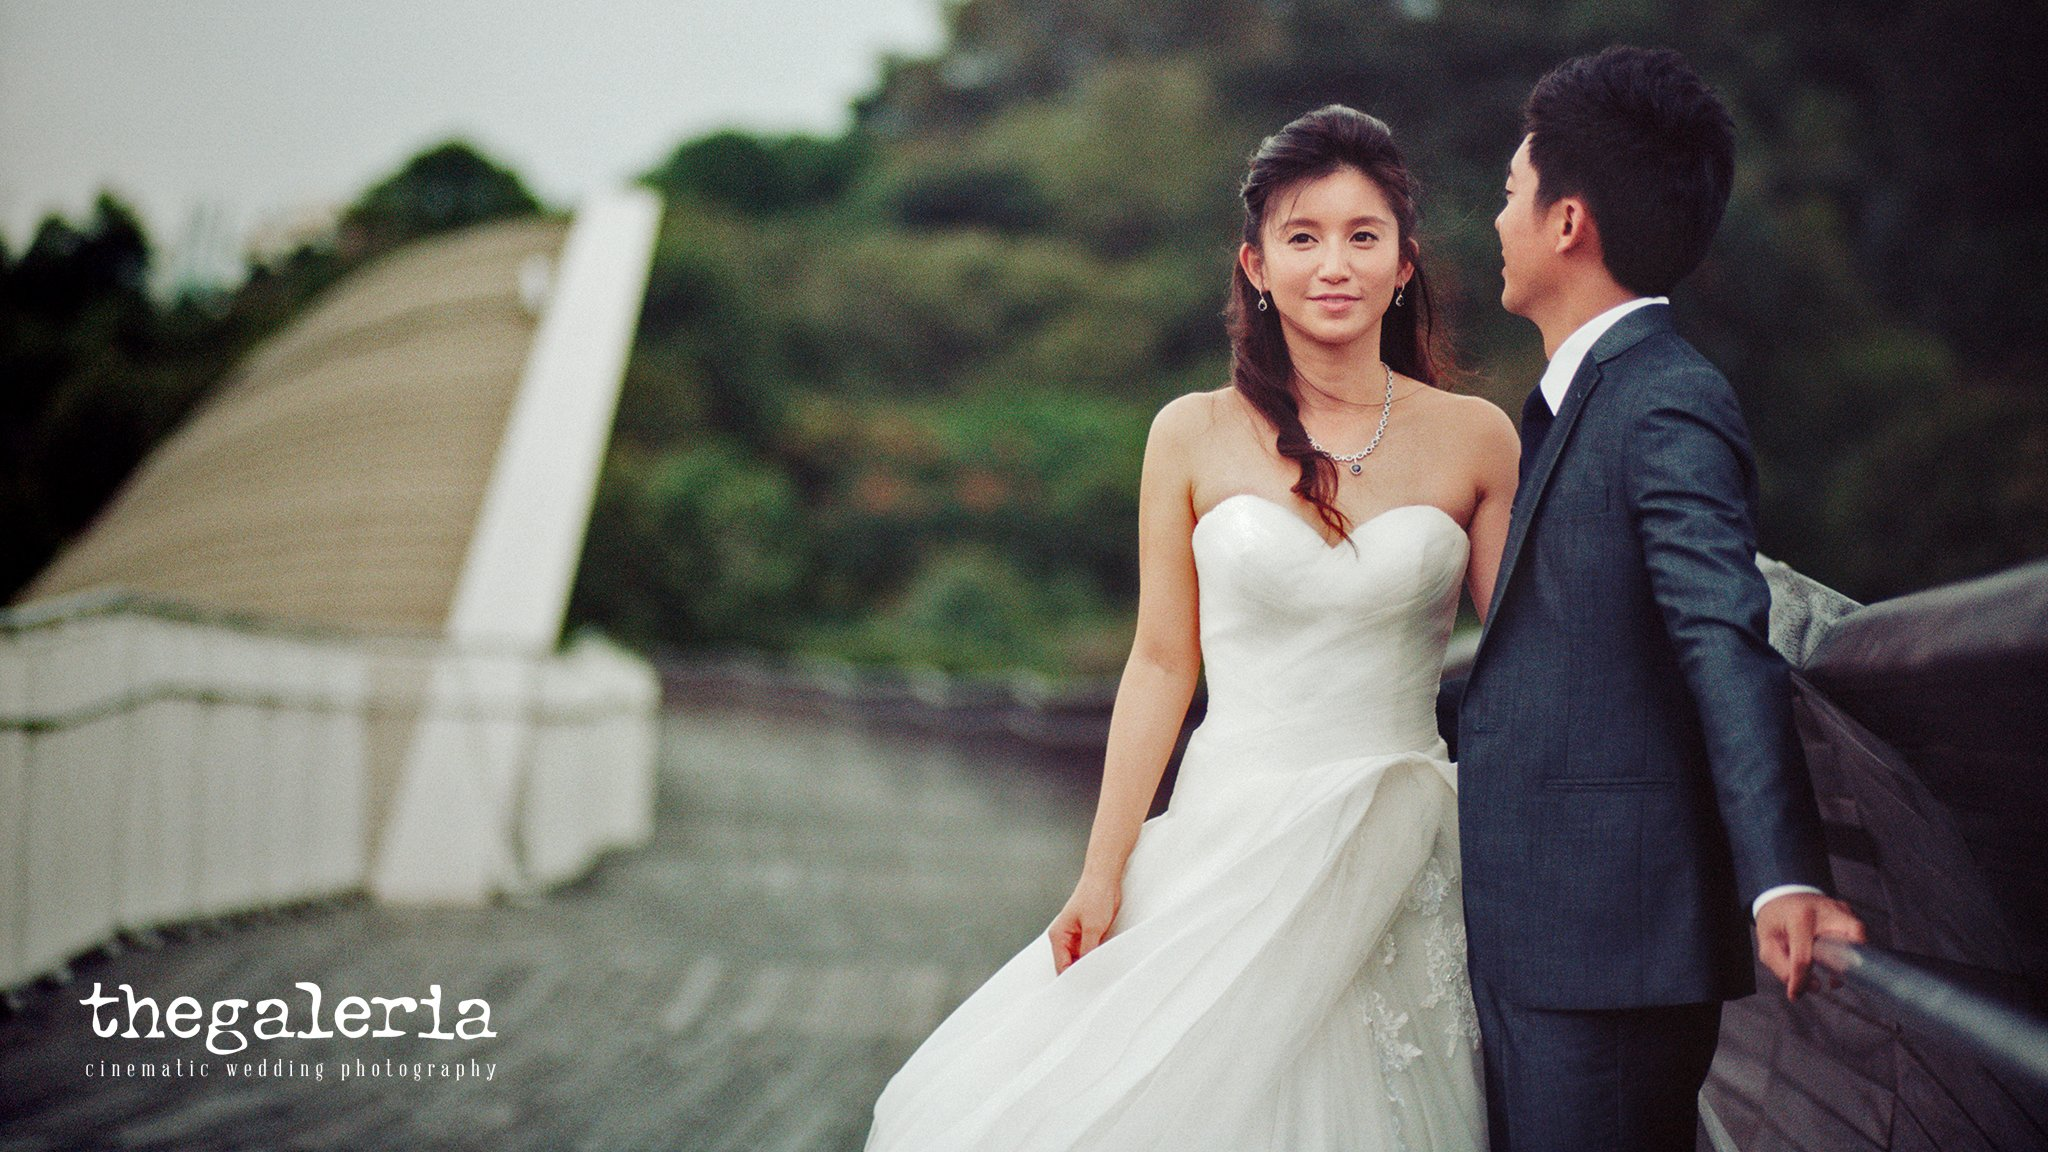 Wedding Photography by Film Wedding Photographer Brian Ho Gown